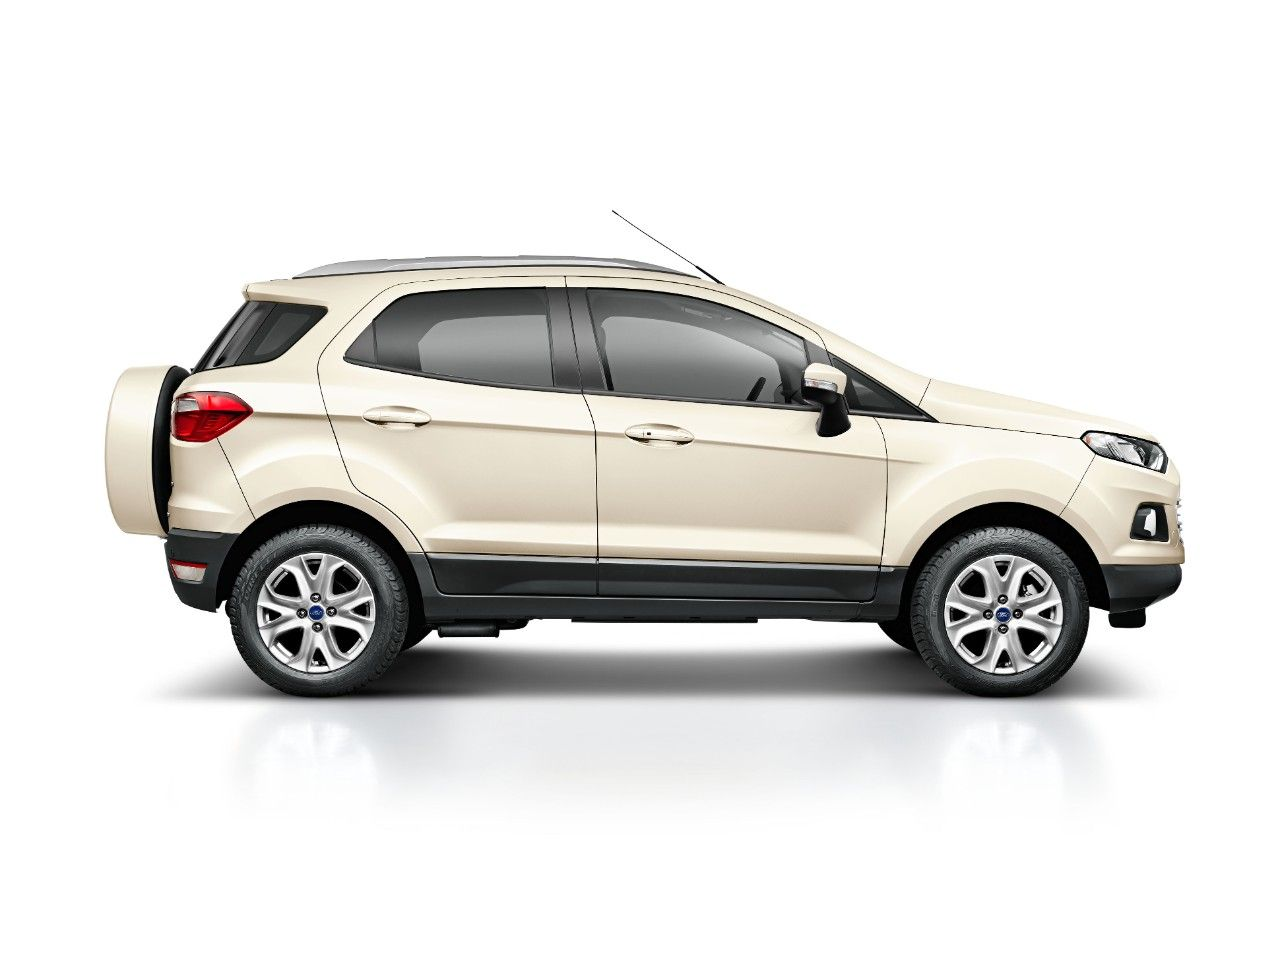 Ford Ecosport 2015 White Price Ford Car2015 Ecosport Visit